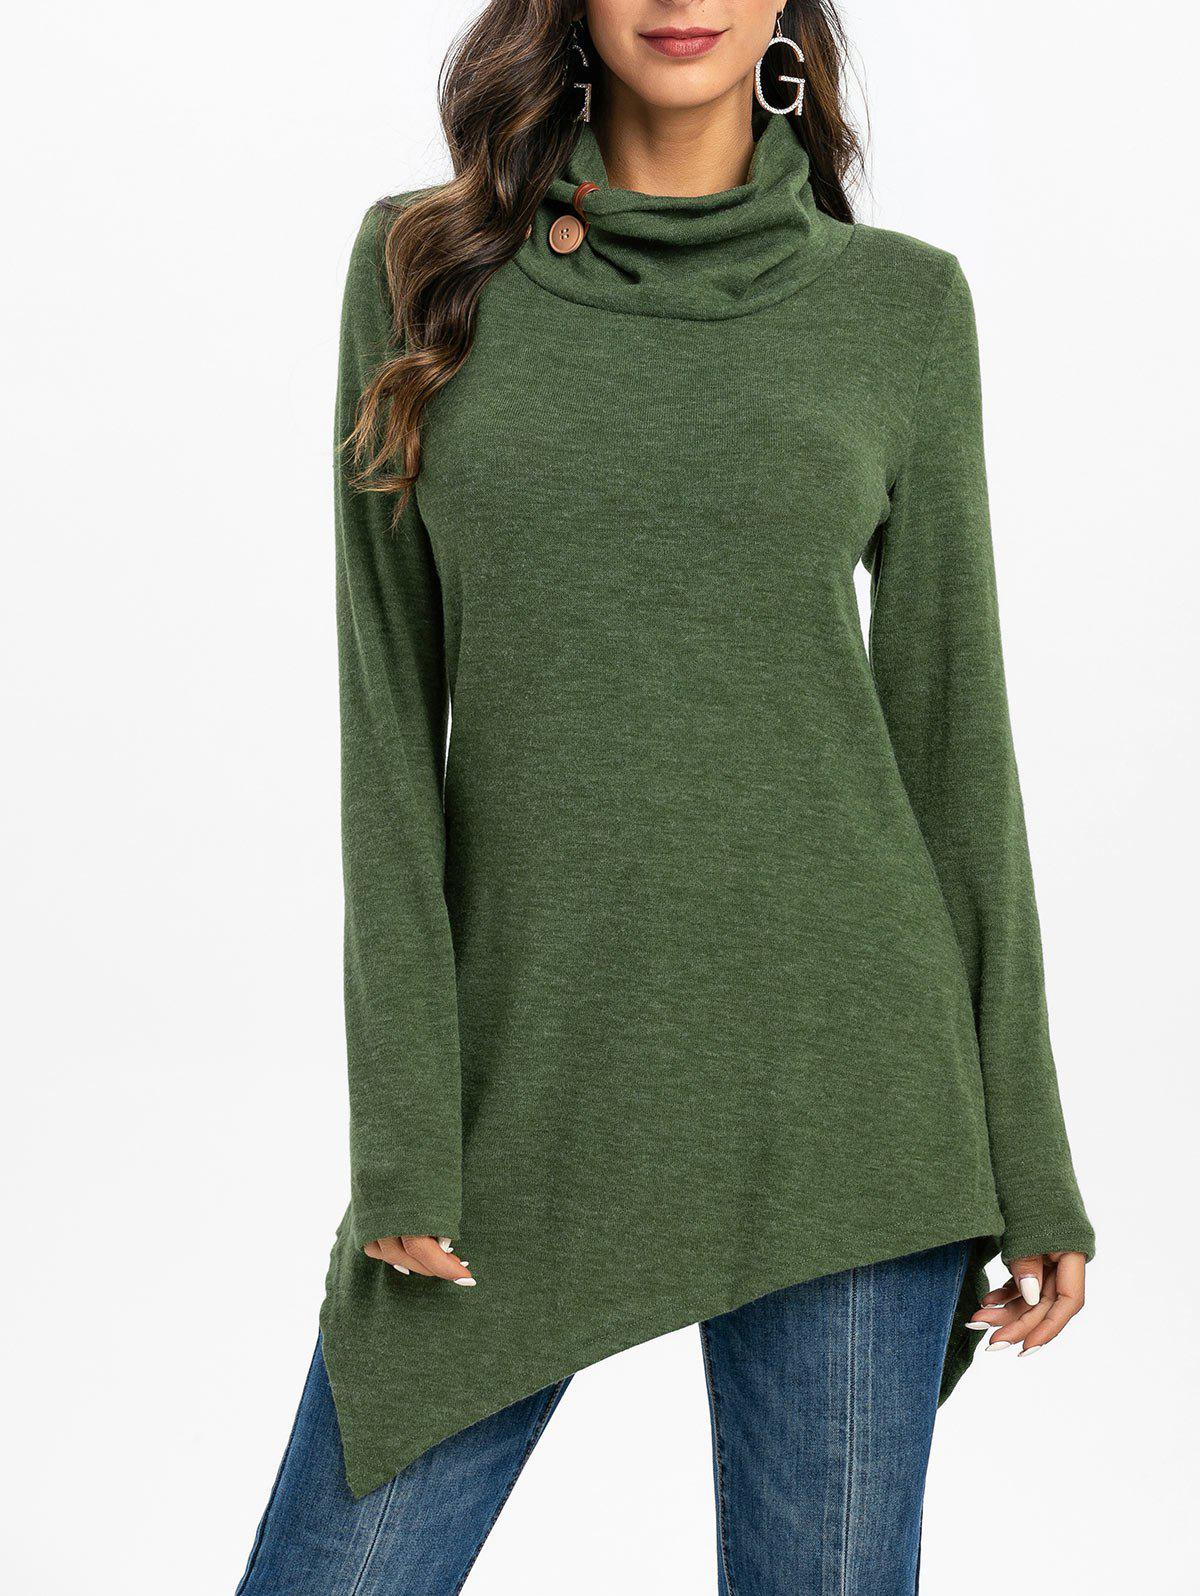 Cowl Neck Button Embellished Asymmetrical Sweater - ARMY GREEN XL